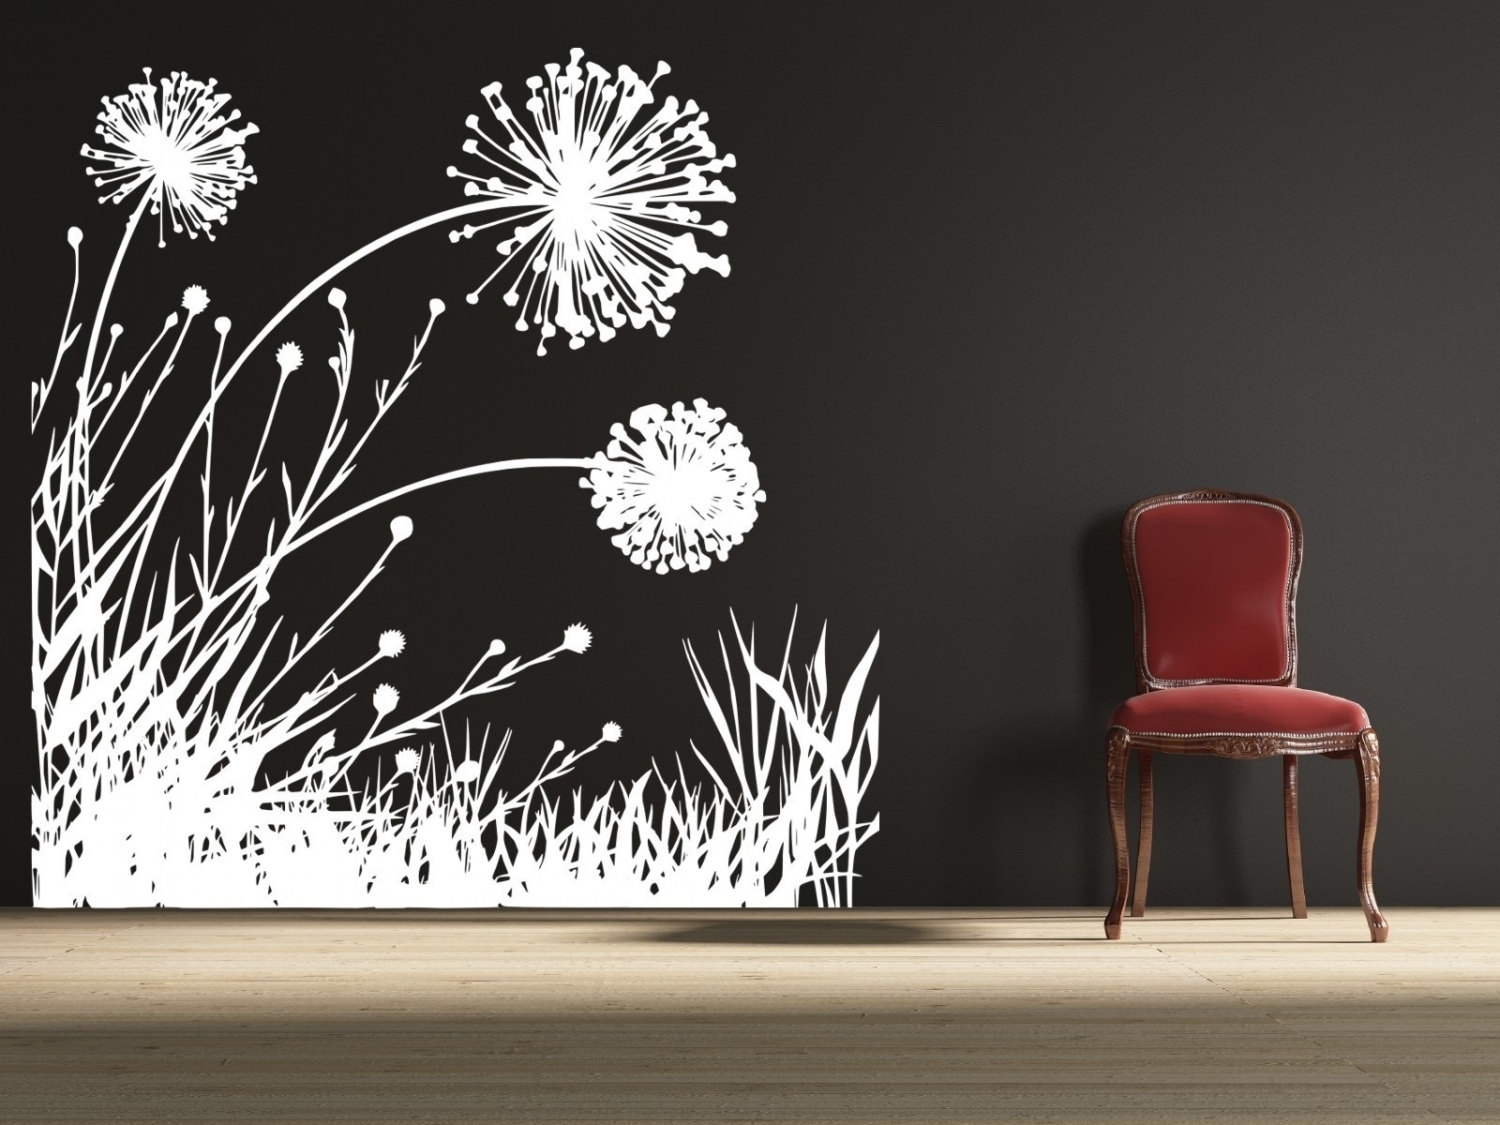 Wall Decoration. Dandelion Wall Decal - Wall Decoration And Wall Art throughout Dandelion Wall Art (Image 20 of 20)